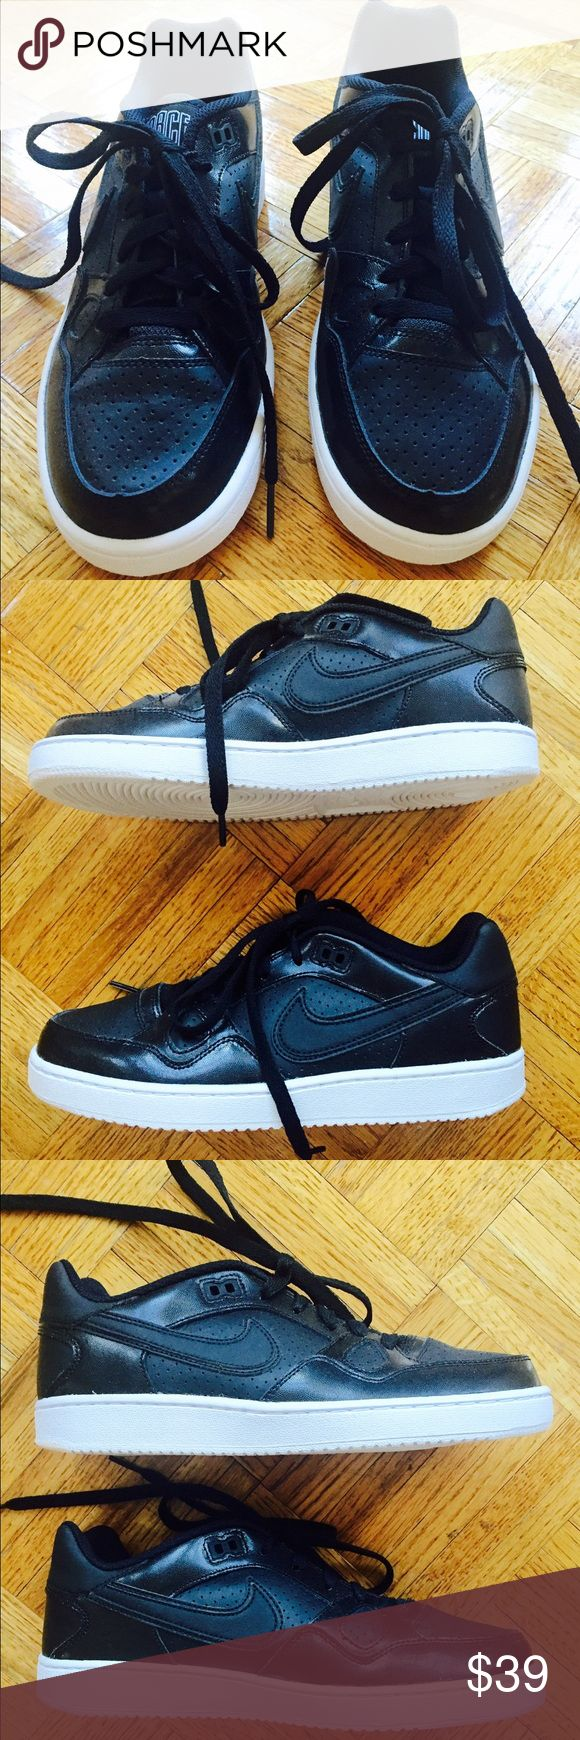 Nike Women's Black Air Force One Sneakers Never worn Nike Air Force One Sneakers. In great condition! Nike Shoes Sneakers